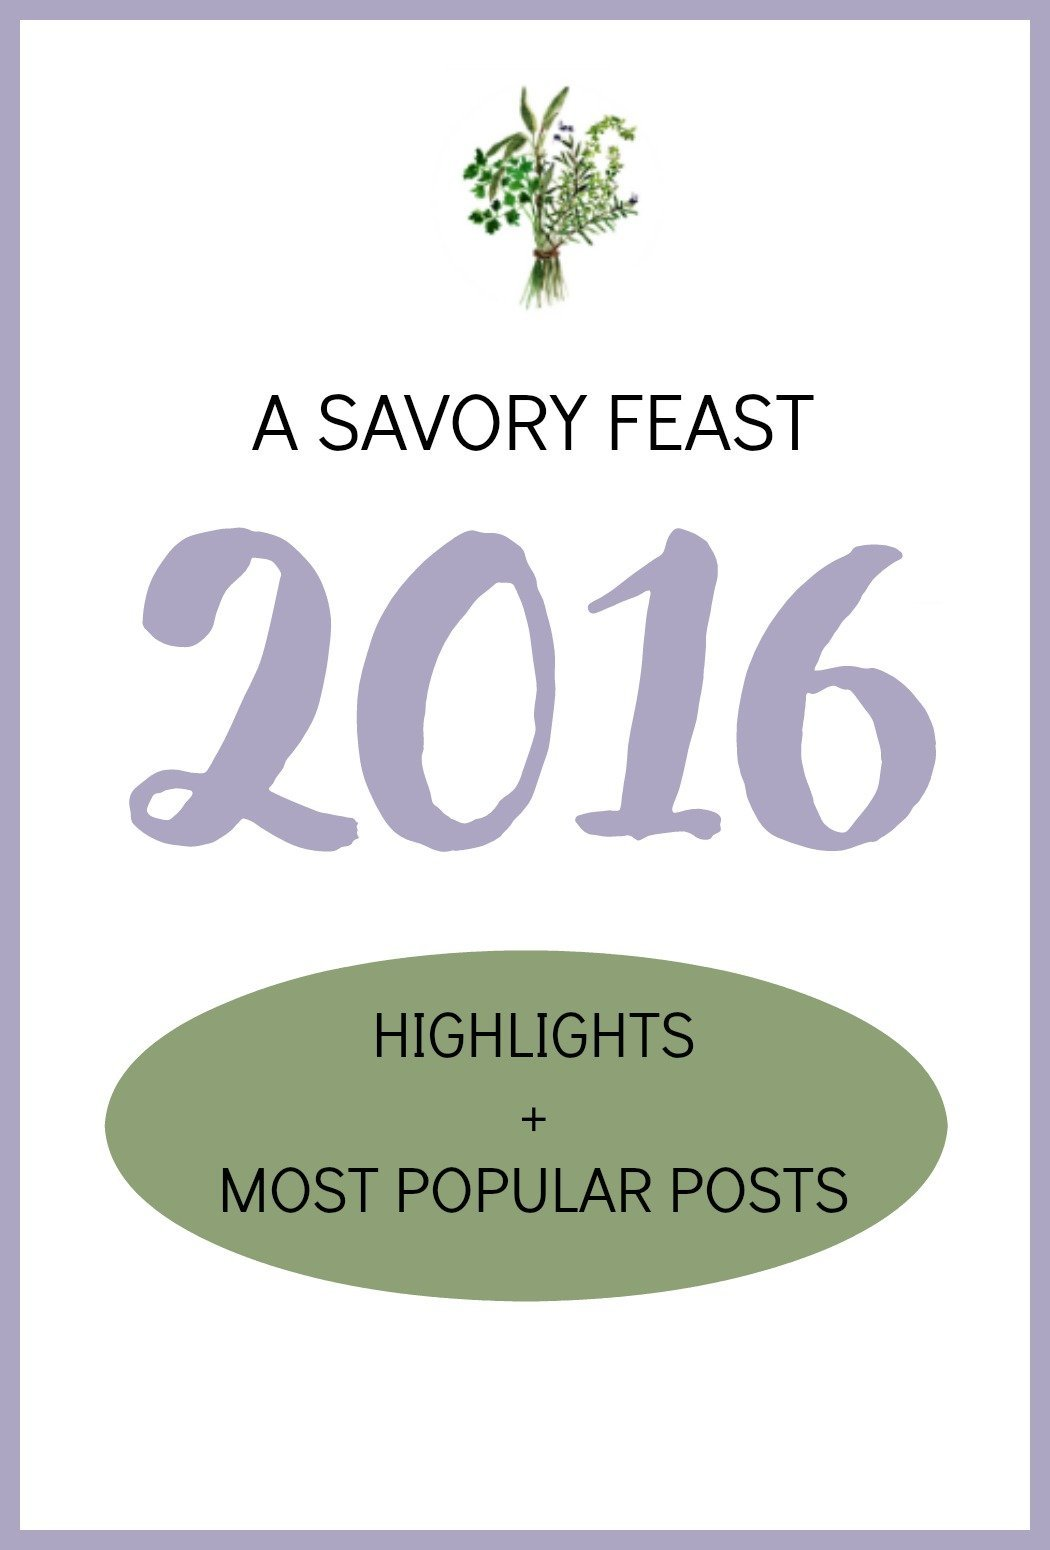 A look back over 2016 with A Savory Feast. This year's top posts and highlights!